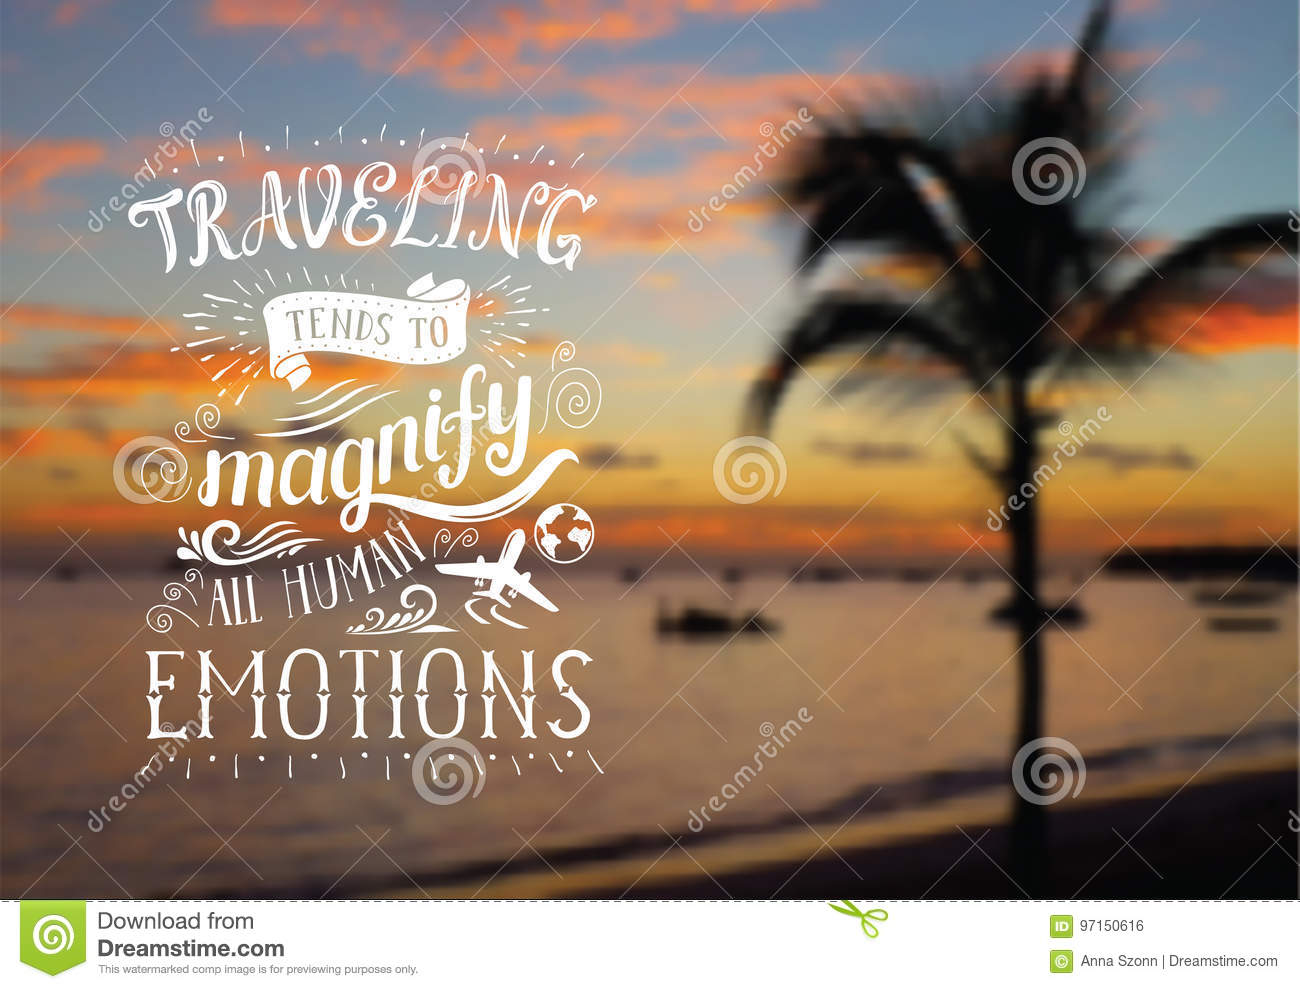 https www dreamstime com stock illustration vector hand lettering quote exotic background poster sunrise beach palm tree travel banner marine landscape image97150616